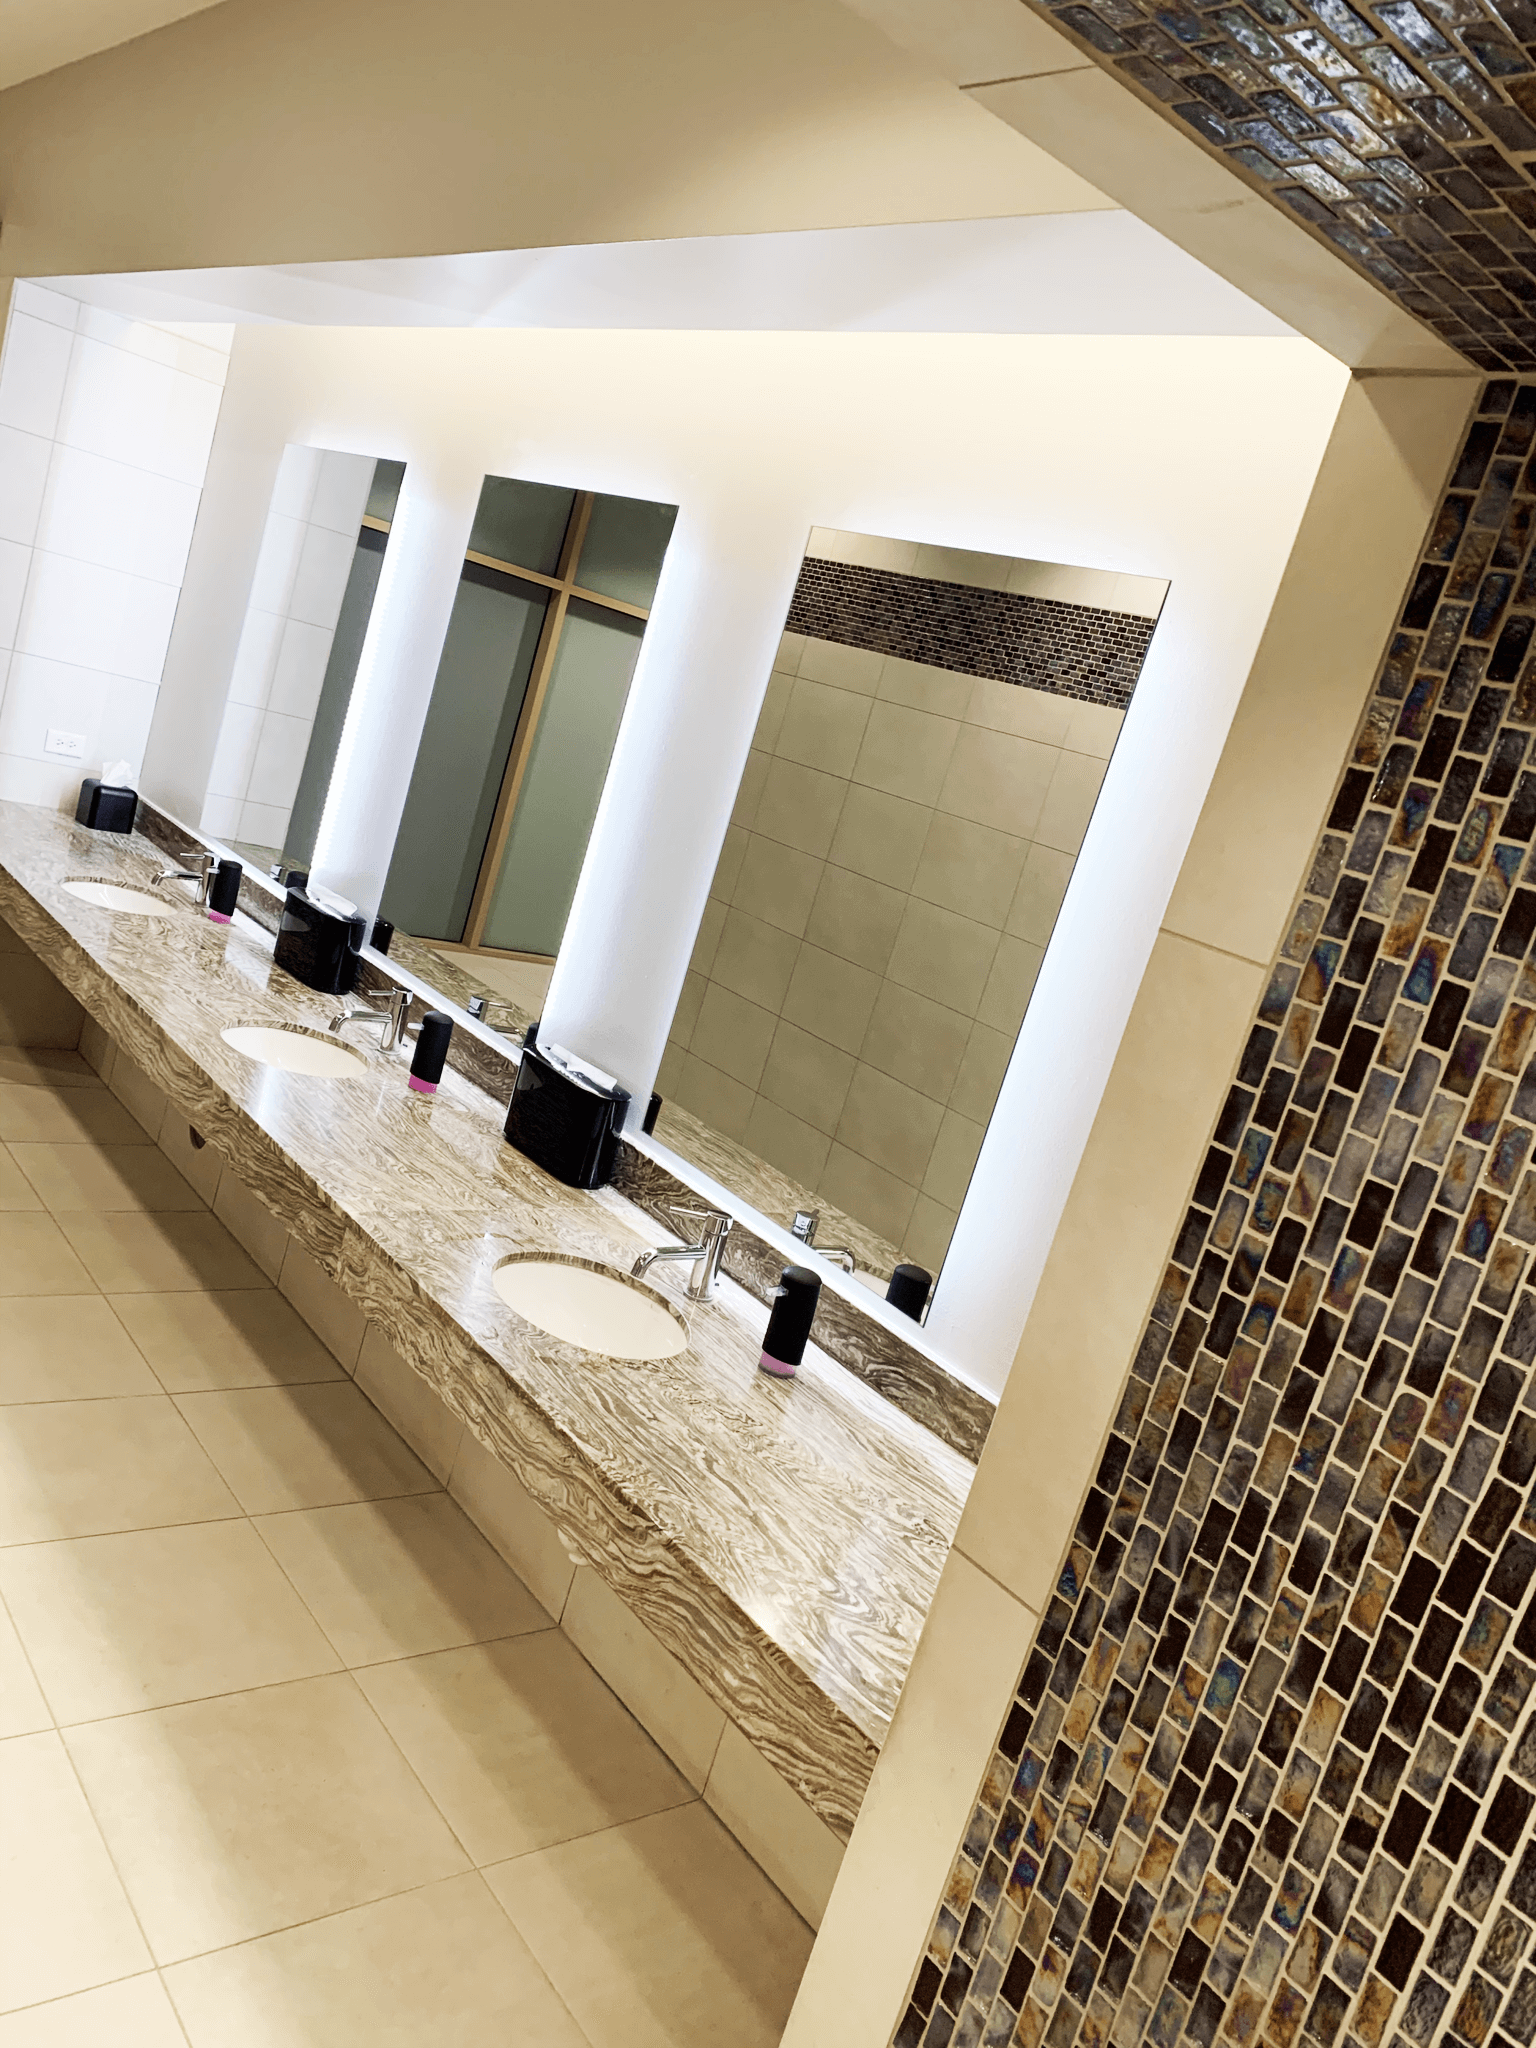 Bathroom shot at Willow Bend Fitness Club, a West Plano Gym.